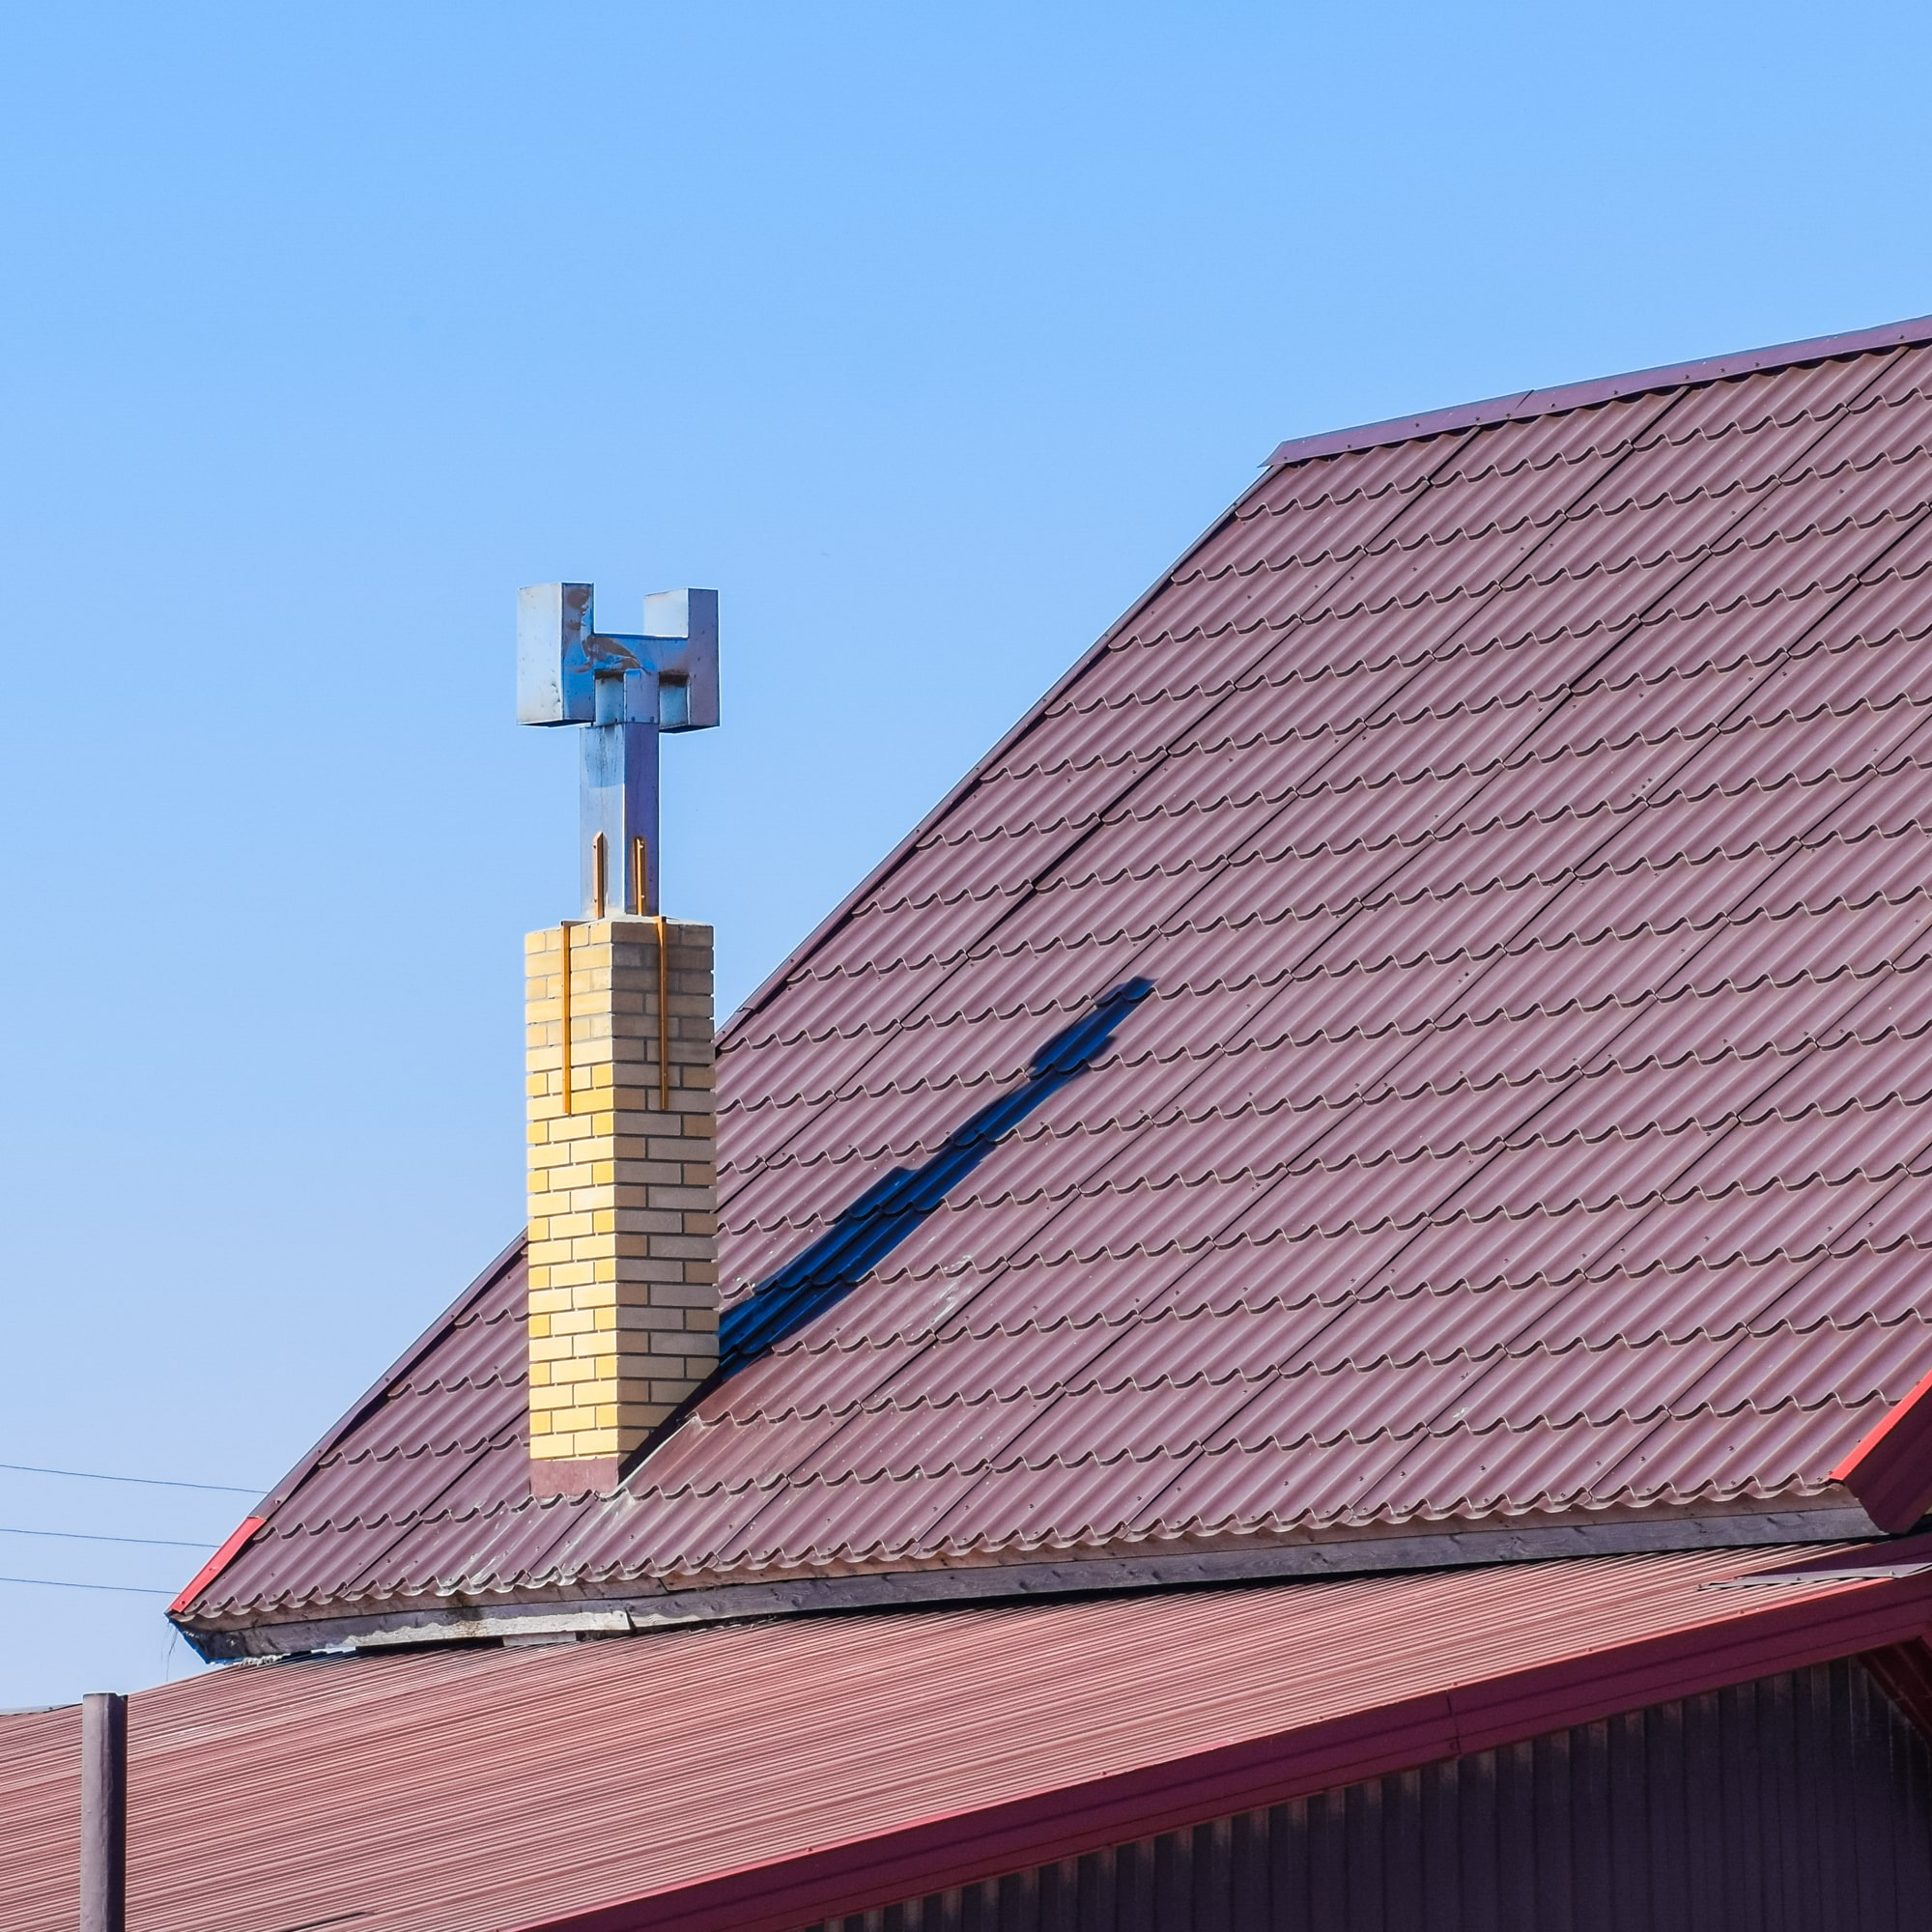 Corrugated Steel Roofing - Is This Really the Best Roofing Material